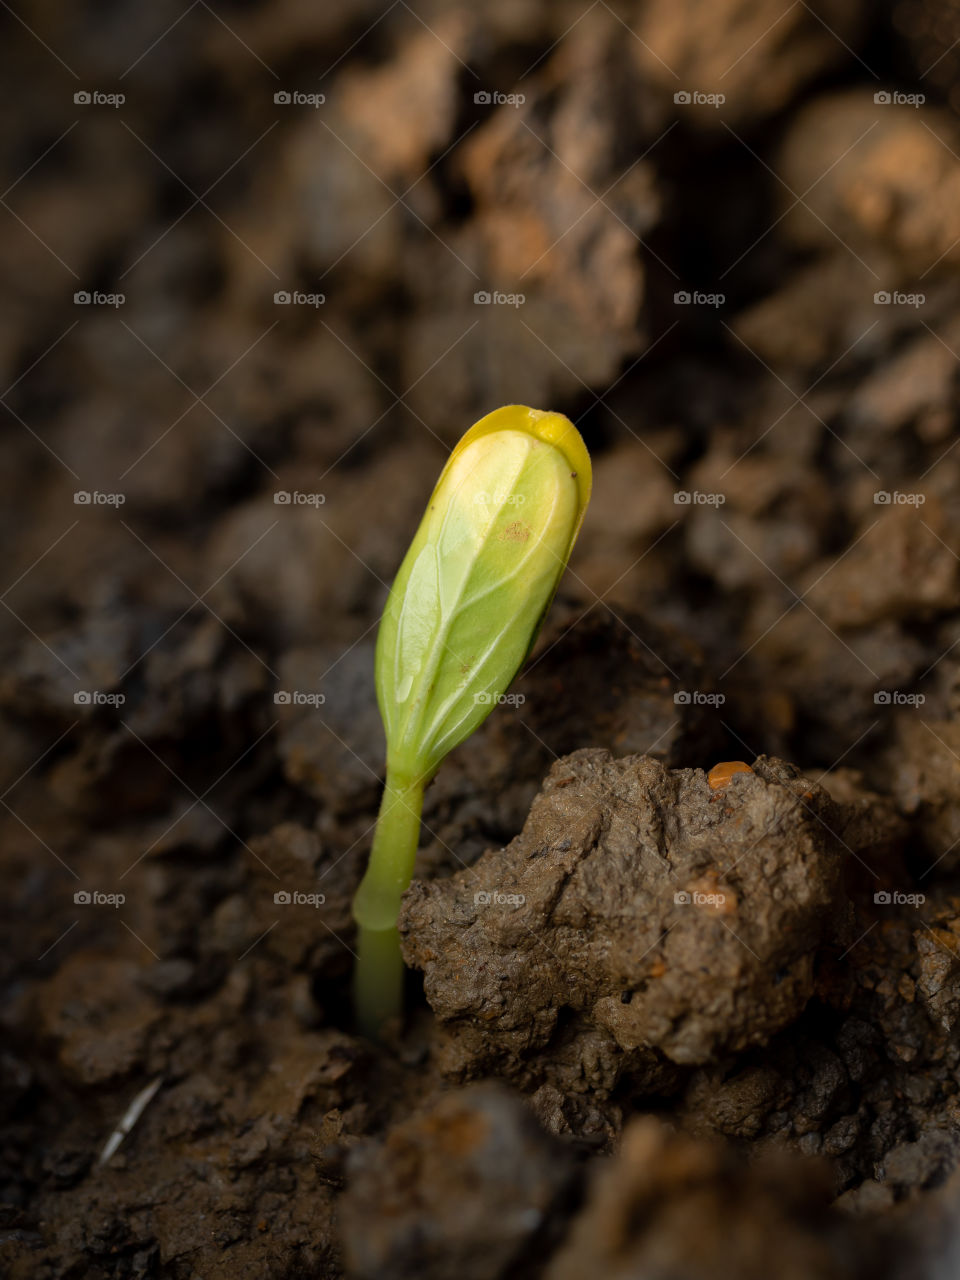 Spring brings new start, happiness, love & a sweet vibes in the air. The mother nature gives birth to new life. Seeds are sprout out & open eyes to see the beauty of nature.